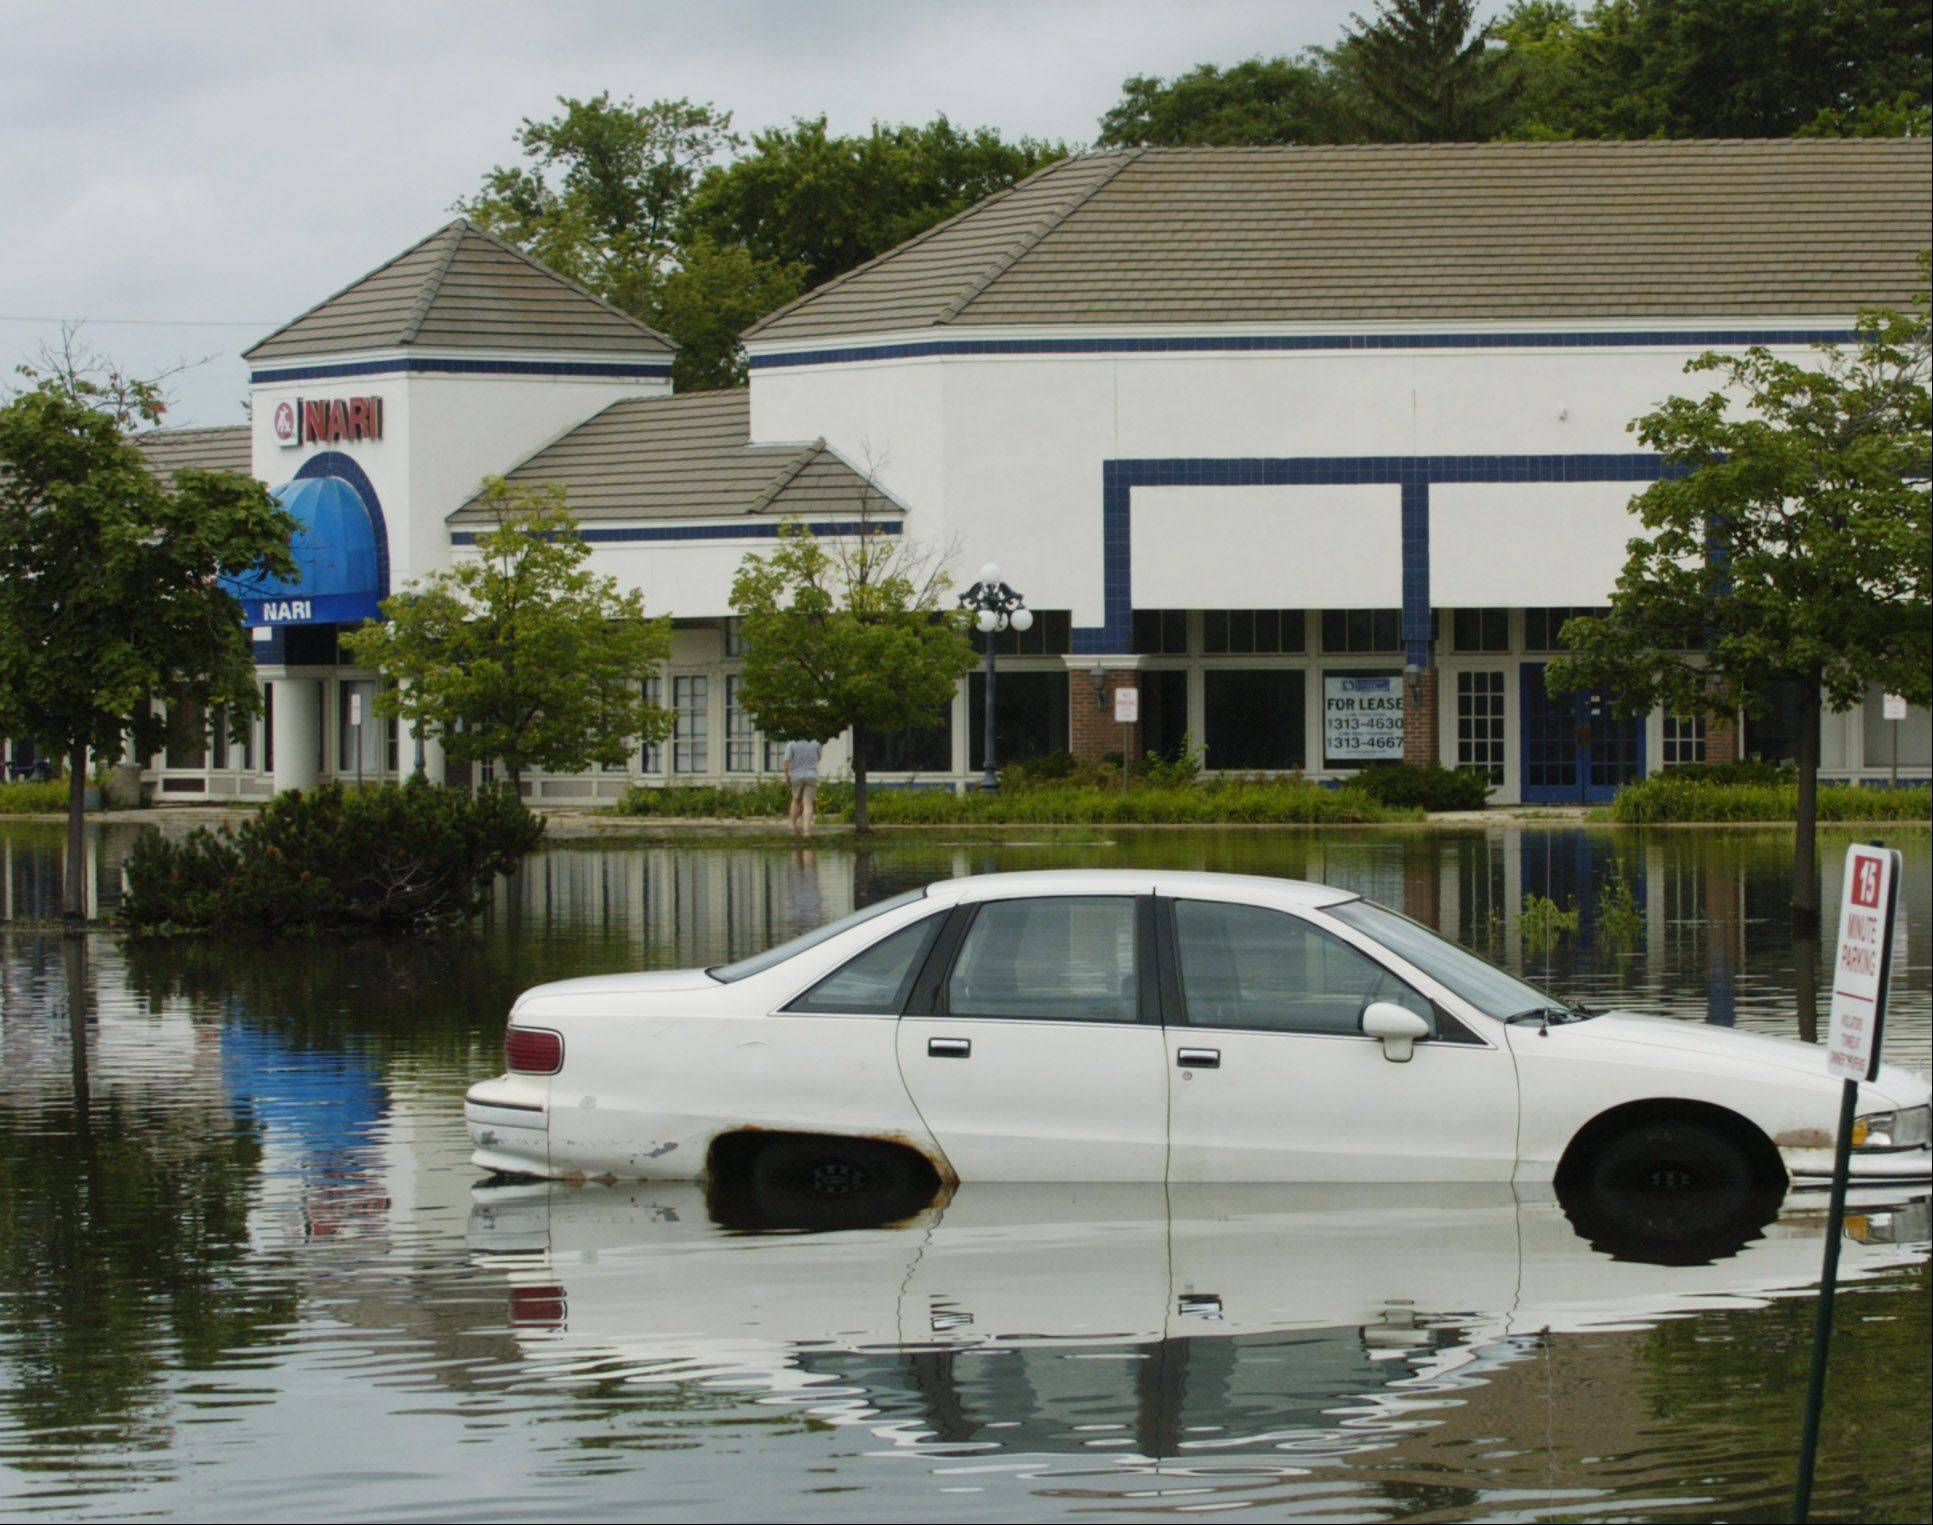 A car is surrounded by flood water in the International Plaza parking lot on Golf Road just east of Arlington Heights Road in Arlington Heights in June 2011. Village officials approved a nearly $60,000 contract with Christopher B. Burkey Engineering to study flooding problems in the area.